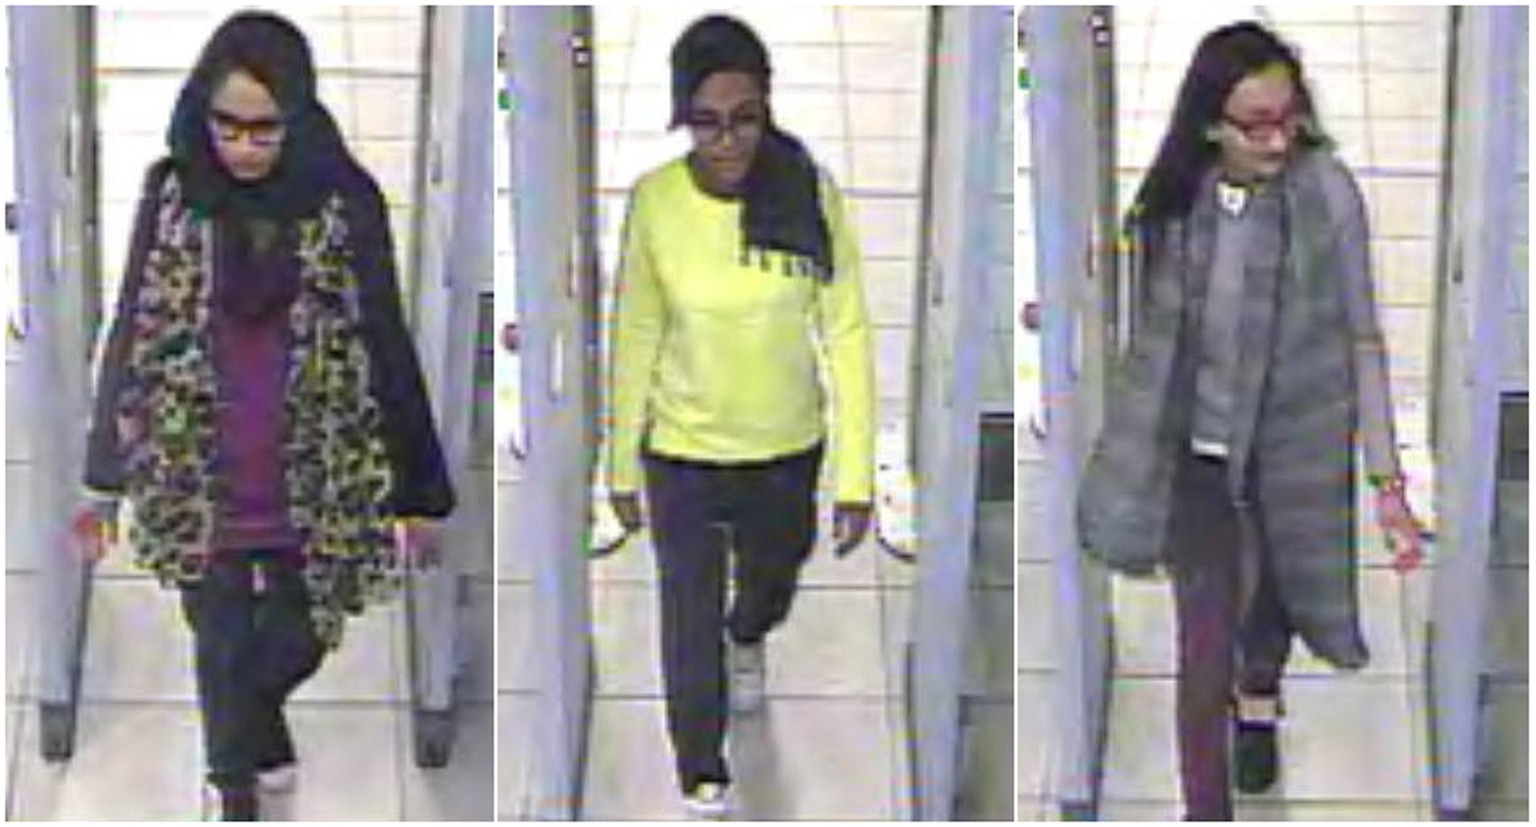 British teenage girls Shamima Begun, Amira Abase and Kadiza Sultana (L-R) walk through security at Gatwick airport before they boarded a flight to Turkey on February 17, 2015, in this combination picture made from handout still images taken from CCTV and released by the Metropolitan Police on February 22, 2015. British police launched an appeal on Friday to trace the three London schoolgirls who are believed to be making their way to Syria, having flown to Turkey earlier this week. The three friends, two aged 15 and one 16, left their east London homes on Tuesday and travelled to Gatwick airport where they caught a Turkish Airlines flight to Istanbul without telling their families. Police said they were working with Turkish authorities to try to find the girls and bring them home. CCTV footage shot on February 17.    REUTERS/Metropolitan Police/Handout via Reuters (BRITAIN - Tags: CRIME LAW POLITICS TPX IMAGES OF THE DAY) ATTENTION EDITORS - THIS PICTURE WAS PROVIDED BY A THIRD PARTY. REUTERS IS UNABLE TO INDEPENDENTLY VERIFY THE AUTHENTICITY, CONTENT, LOCATION OR DATE OF THIS IMAGE. NO SALES. NO ARCHIVES. FOR EDITORIAL USE ONLY. NOT FOR SALE FOR MARKETING OR ADVERTISING CAMPAIGNS. QUALITY FROM SOURCE. THIS PICTURE WAS PROCESSED BY REUTERS TO ENHANCE QUALITY. AN UNPROCESSED VERSION WILL BE PROVIDED SEPARATELY